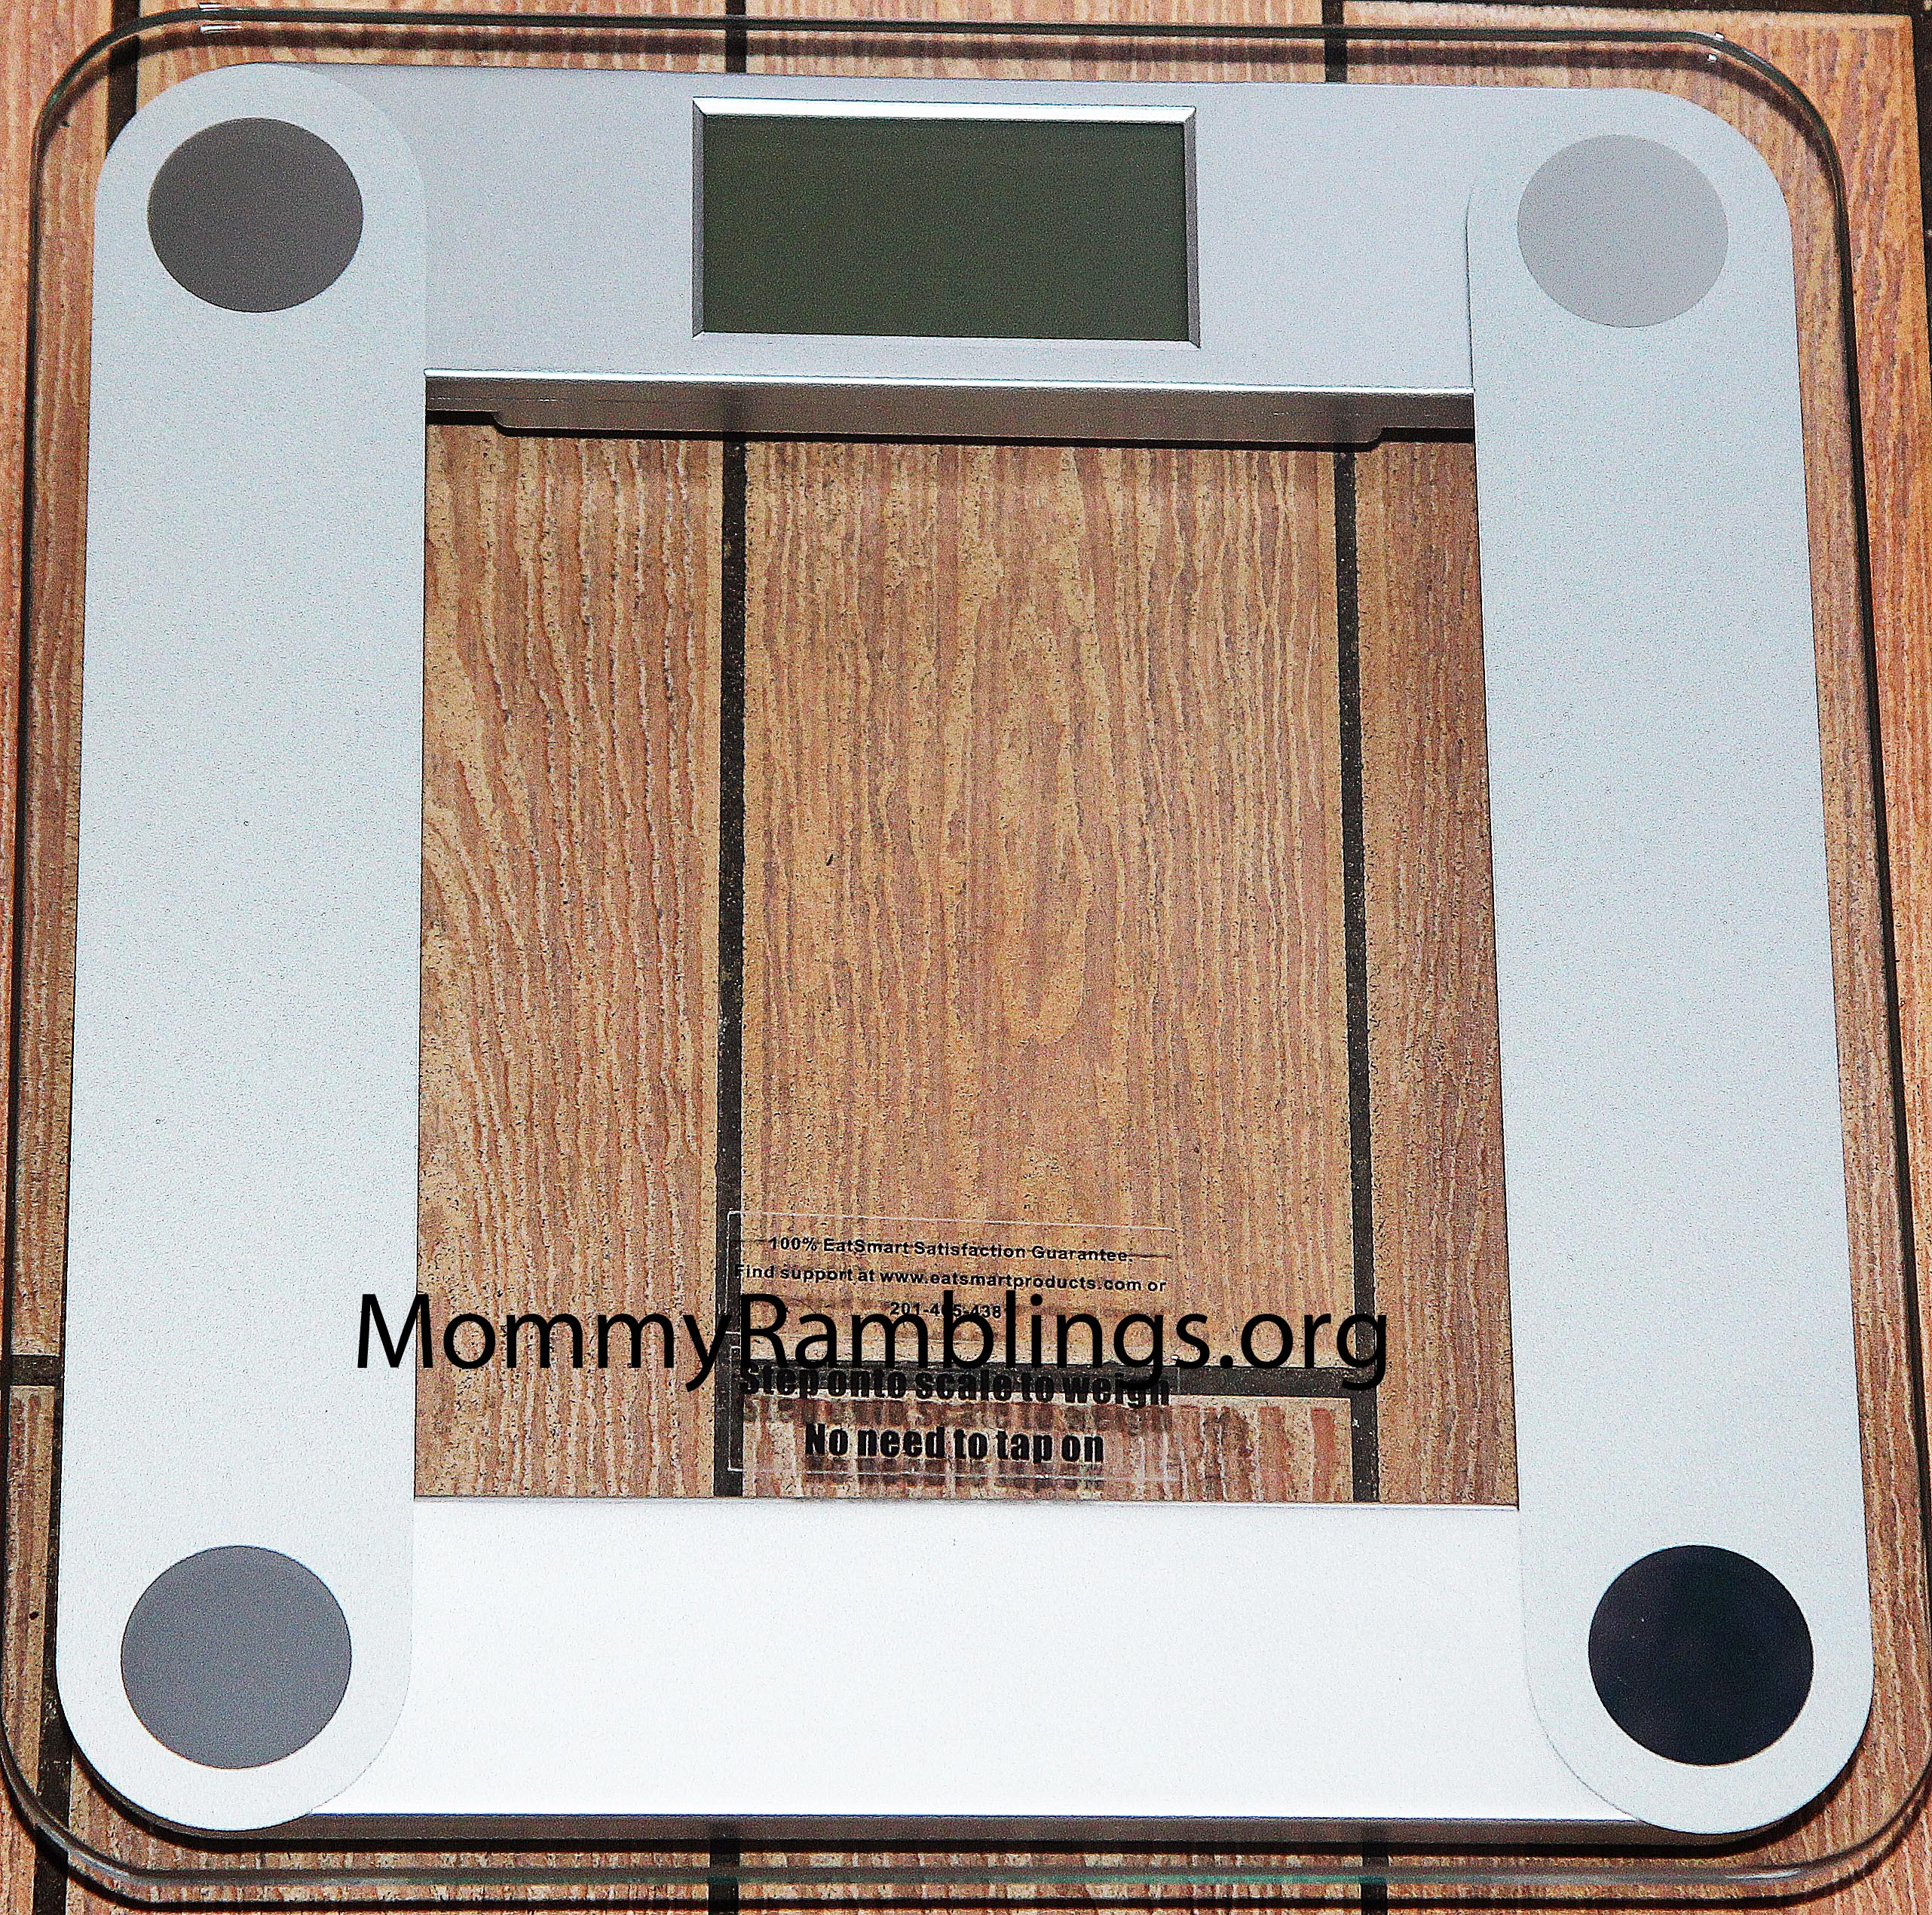 Product spotlight meet the eatsmart precision digital bathroom scale - Eatsmart Is Sponsoring A Giveaway On Mommy Ramblings One Lucky Blog Reader Will Win Their Own Eatsmart Precision Digital Bathroom Scale With Extra Large